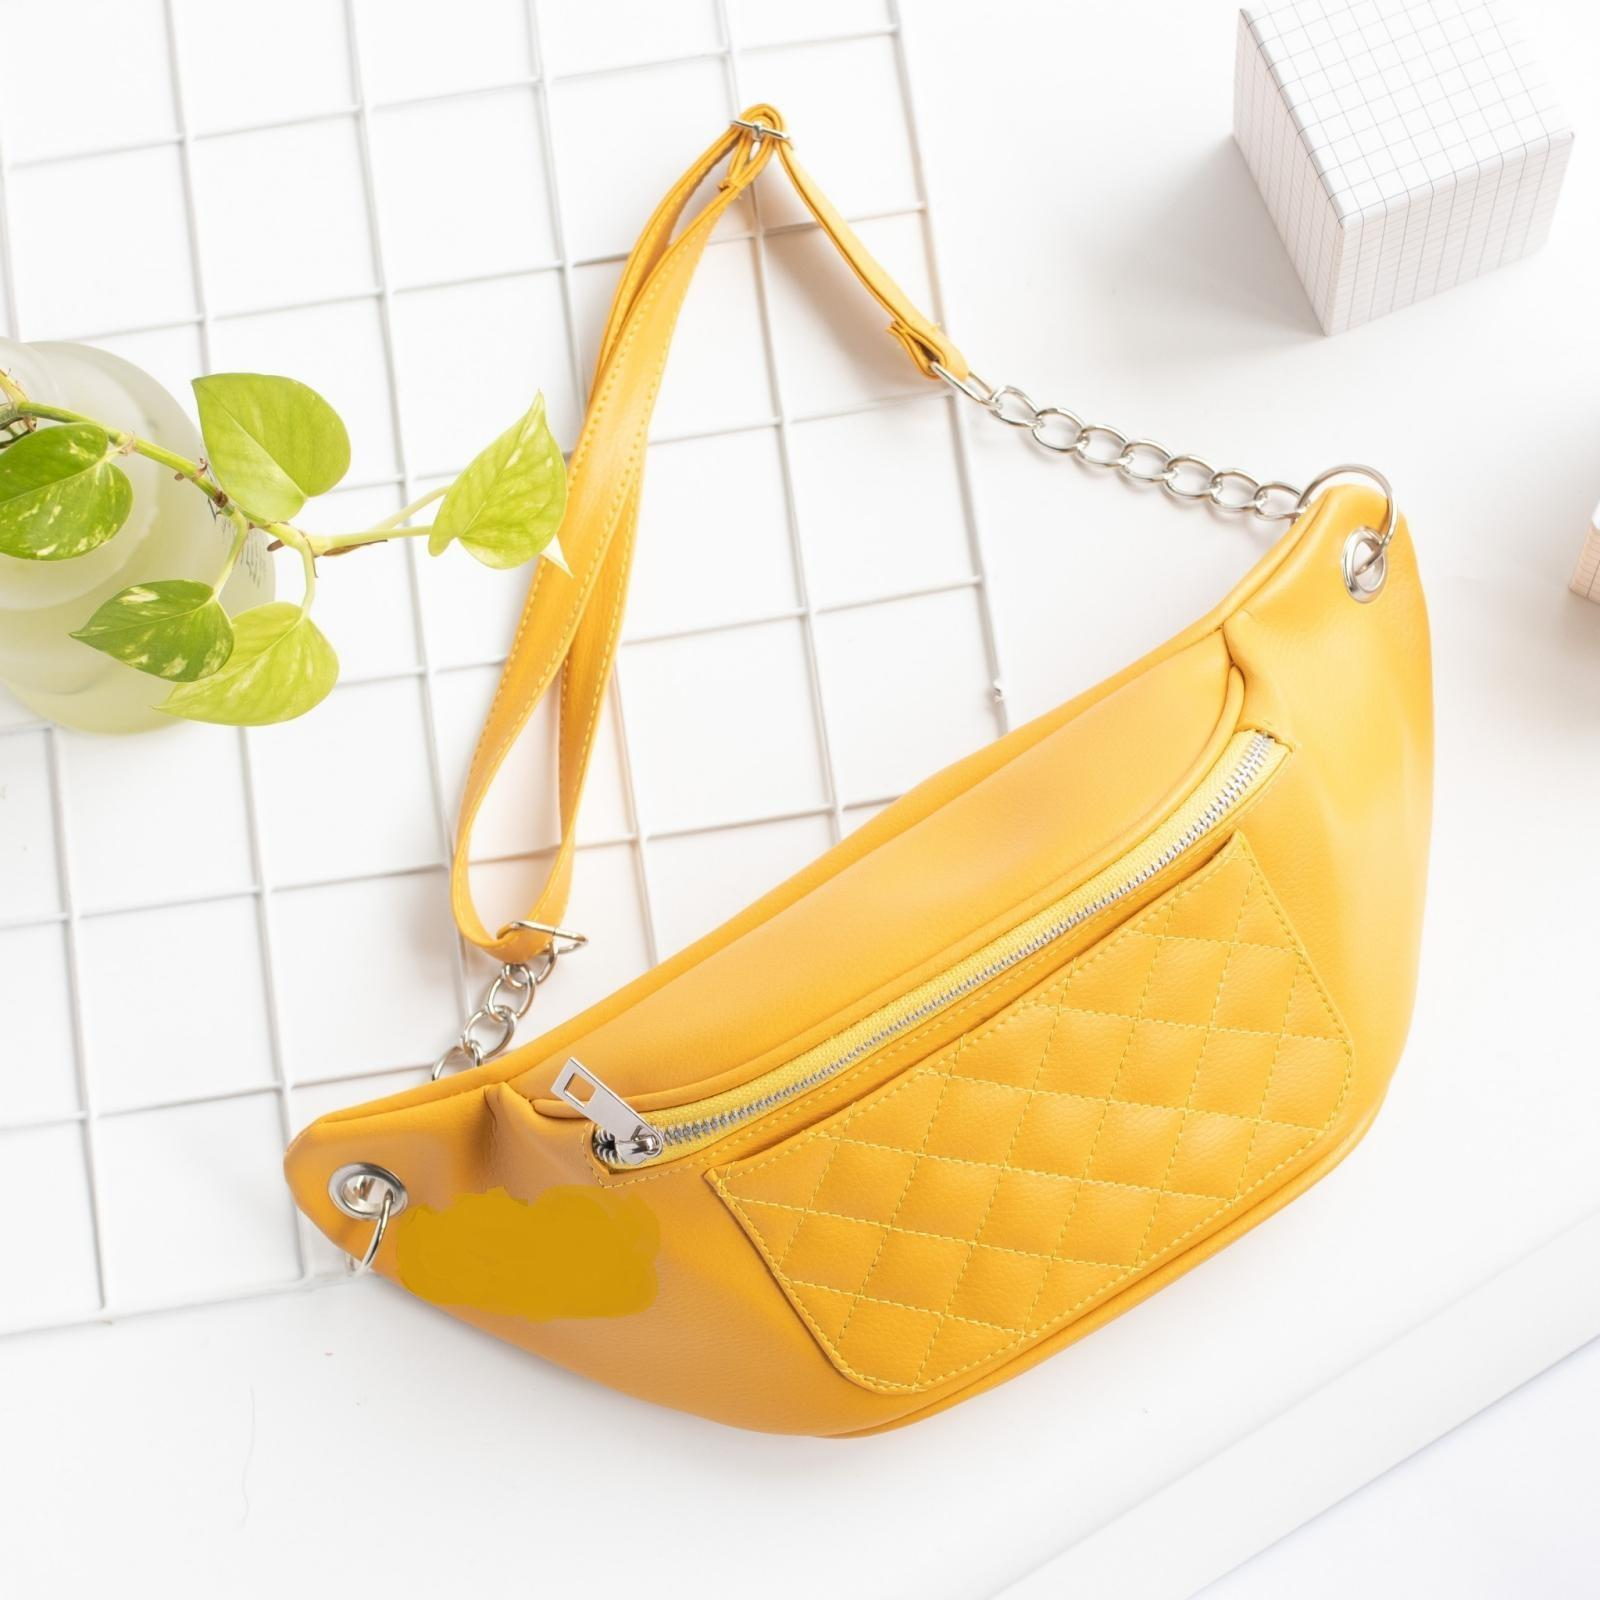 Lucky Tas Waistbag Nagita Yellow